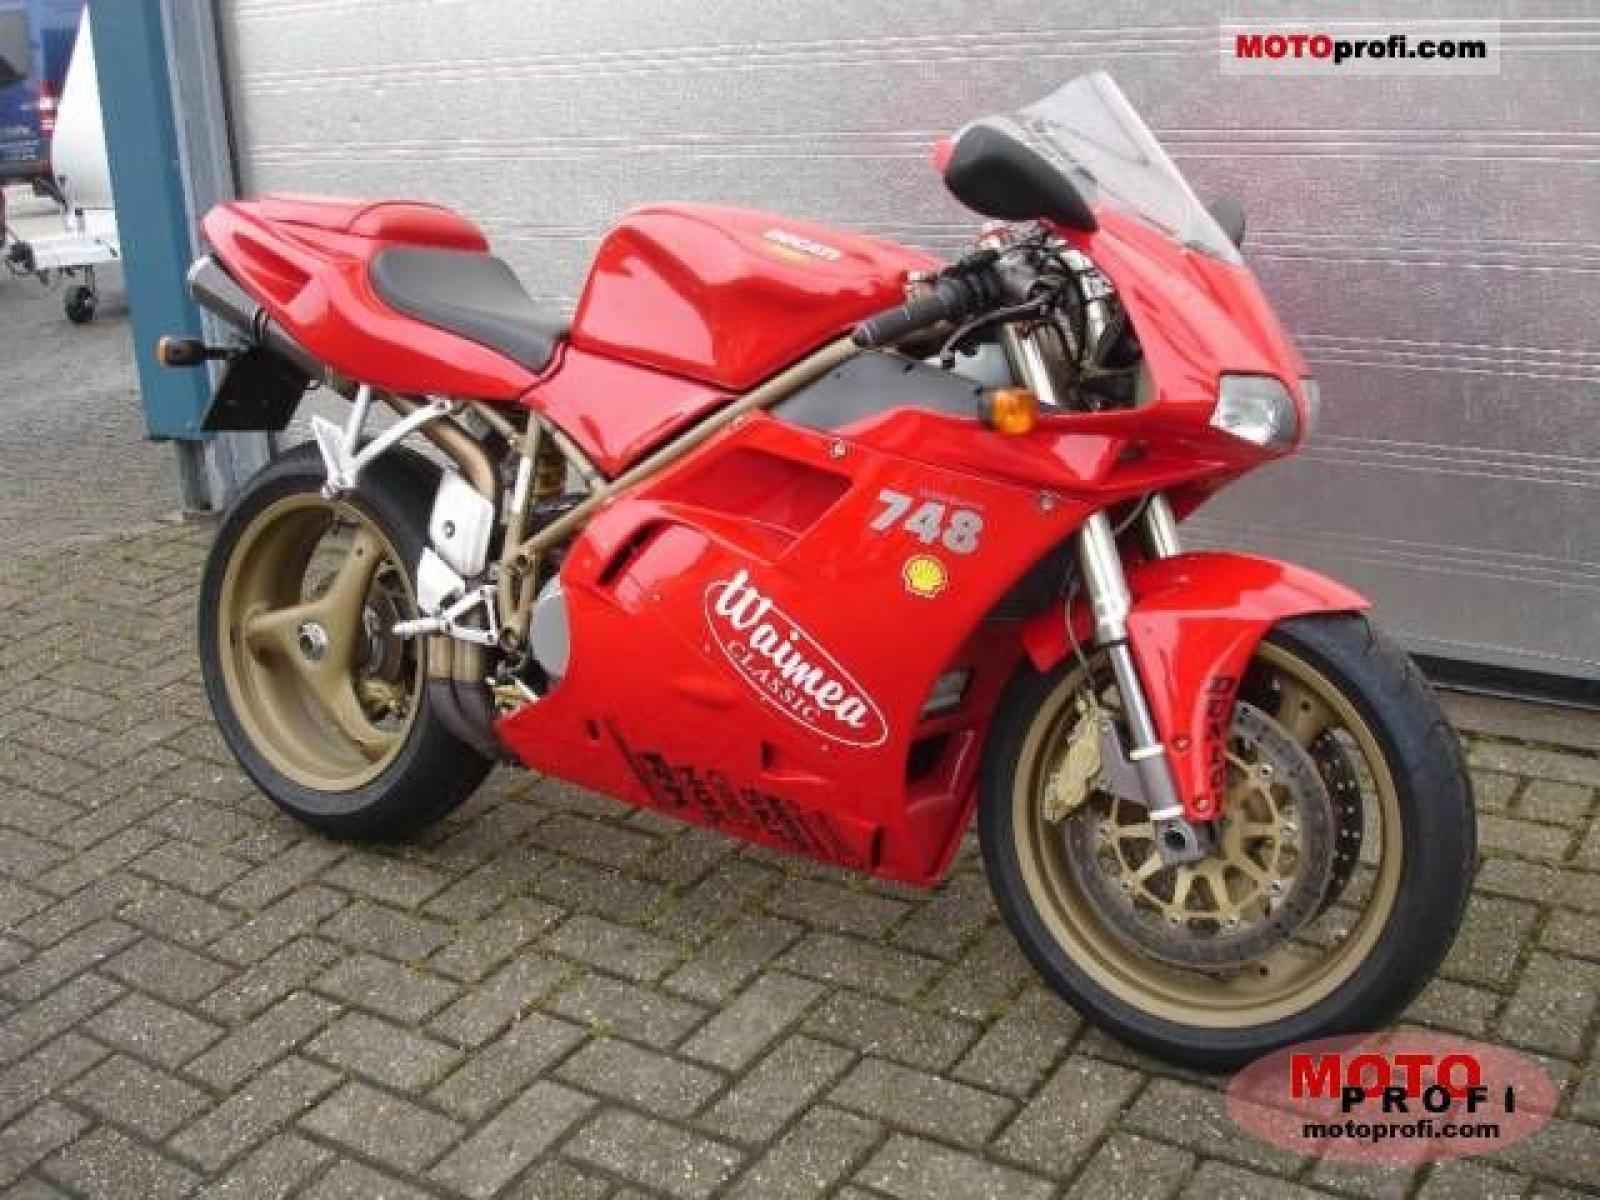 Ducati 748 Biposto 1996 wallpapers #14148